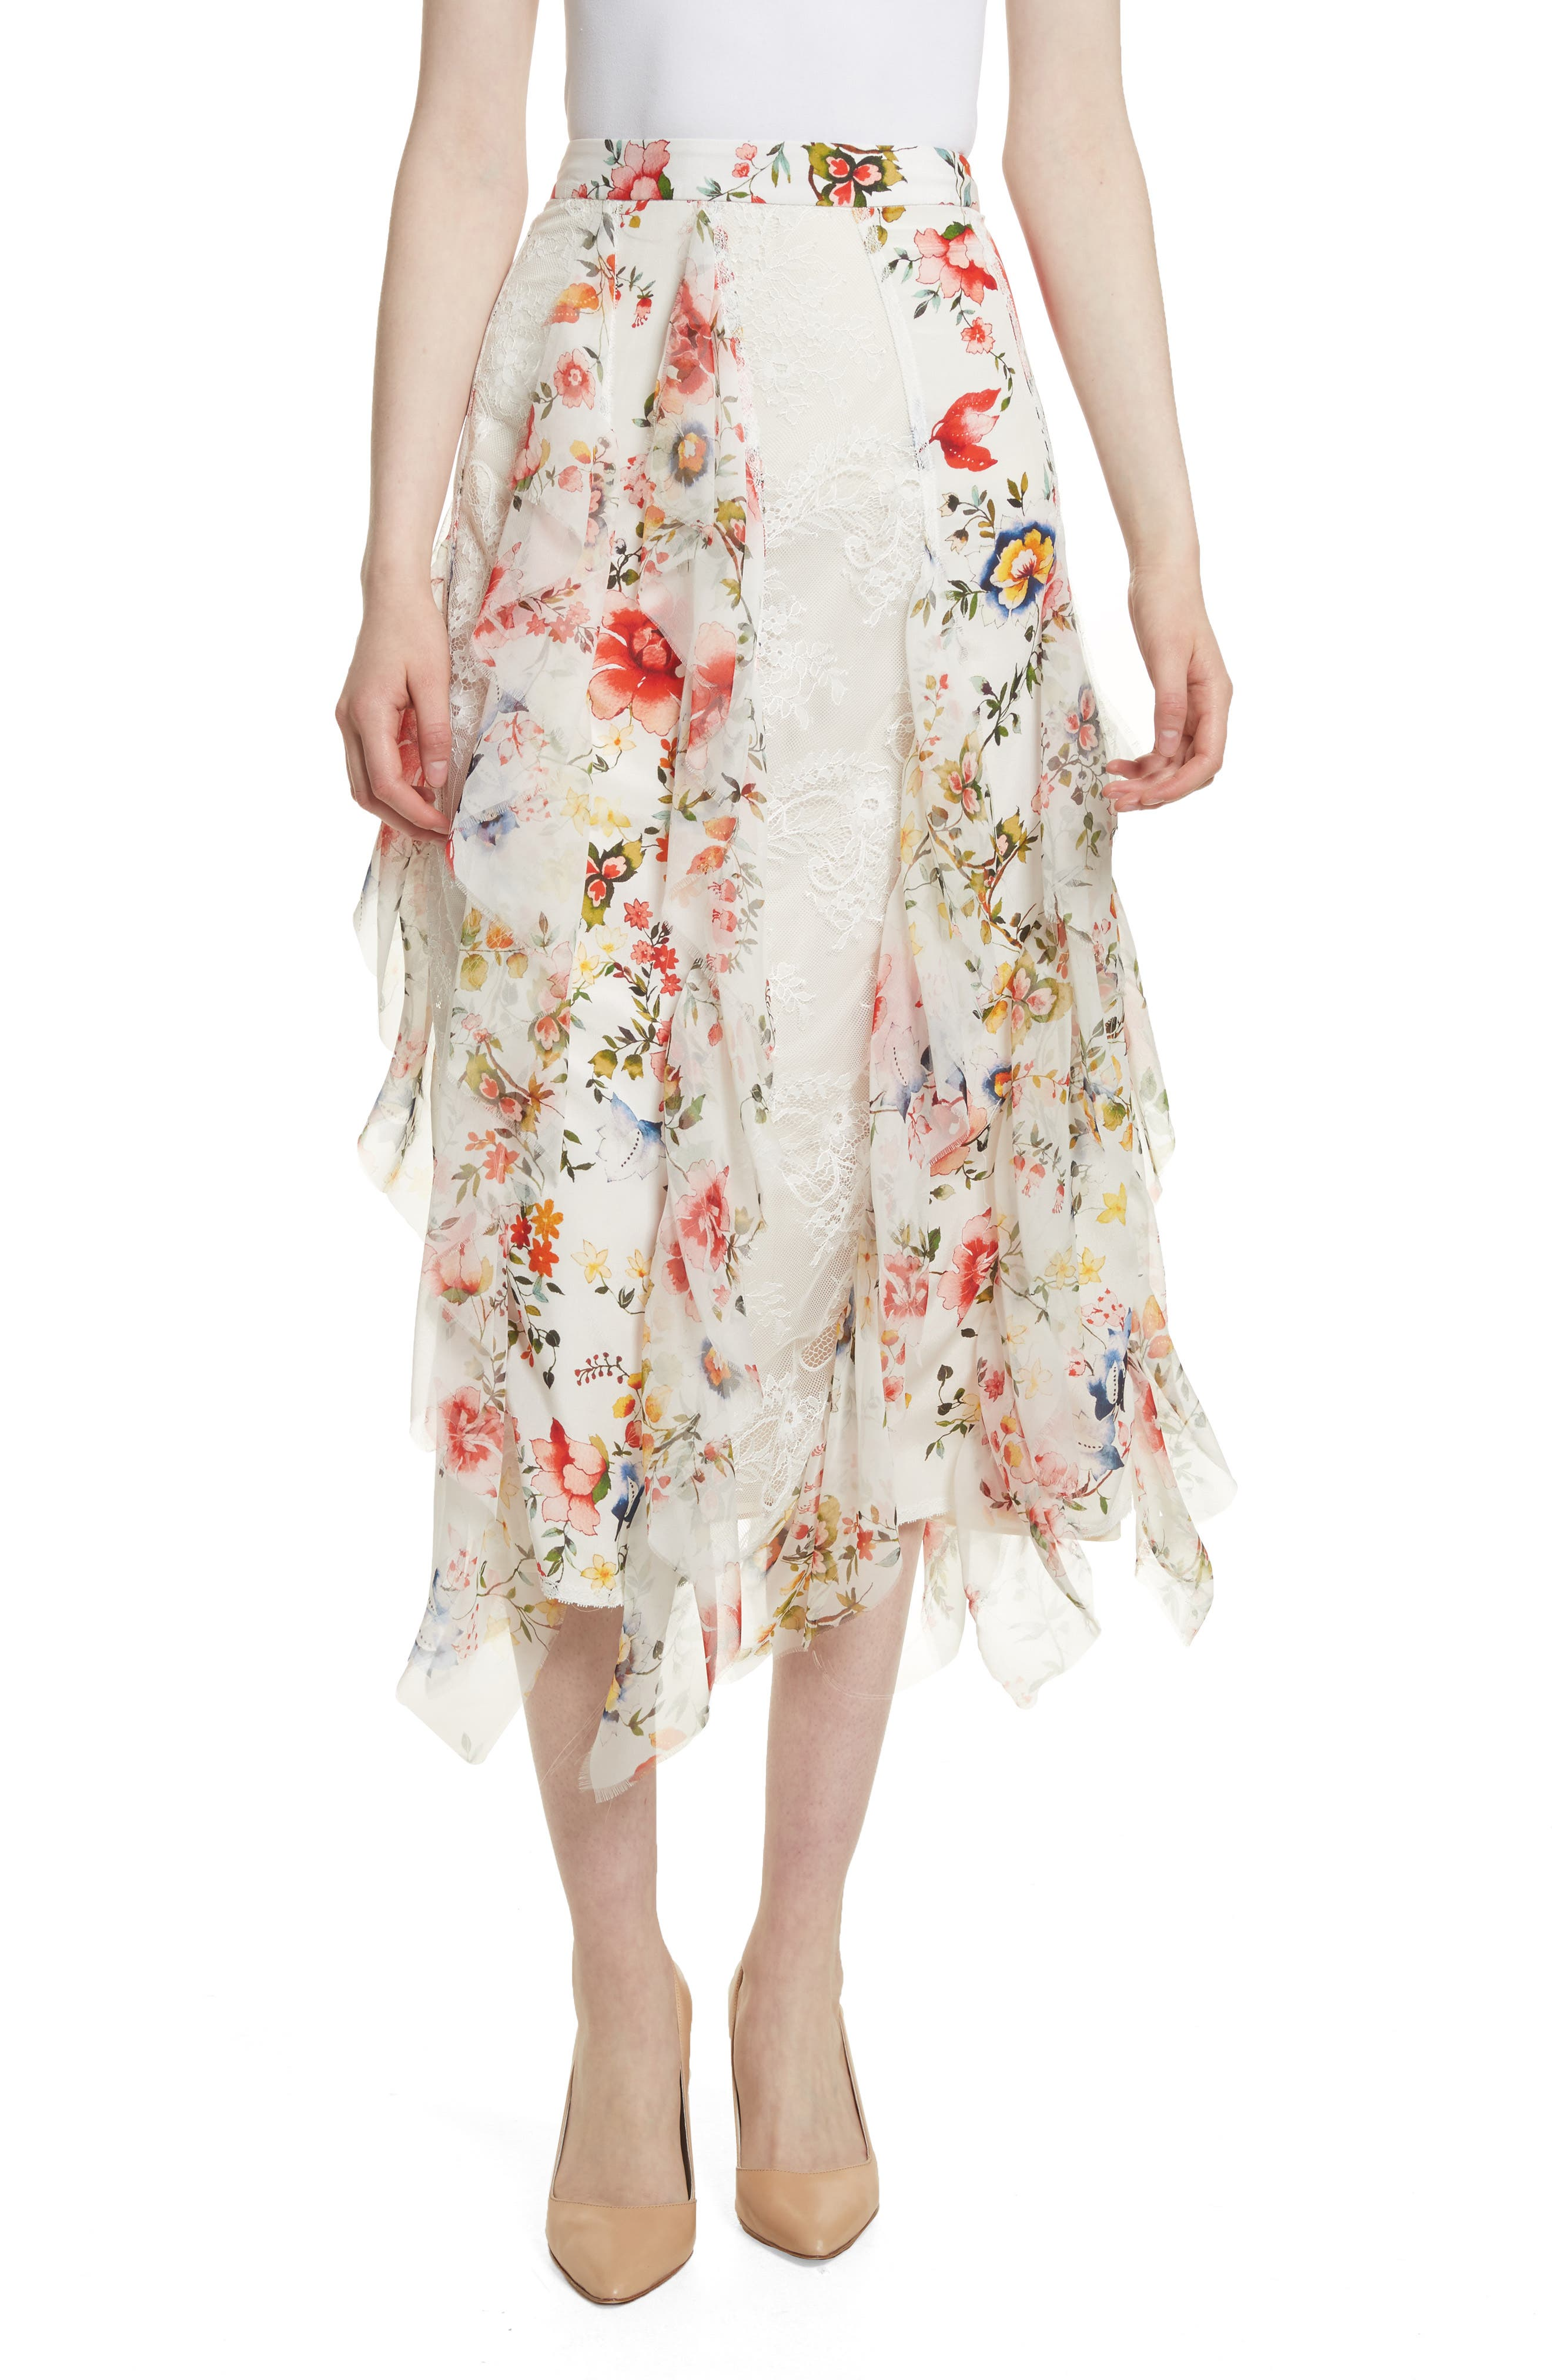 Yula Floral Silk & Lace Midi Skirt,                         Main,                         color, Floral Soiree-Soft White